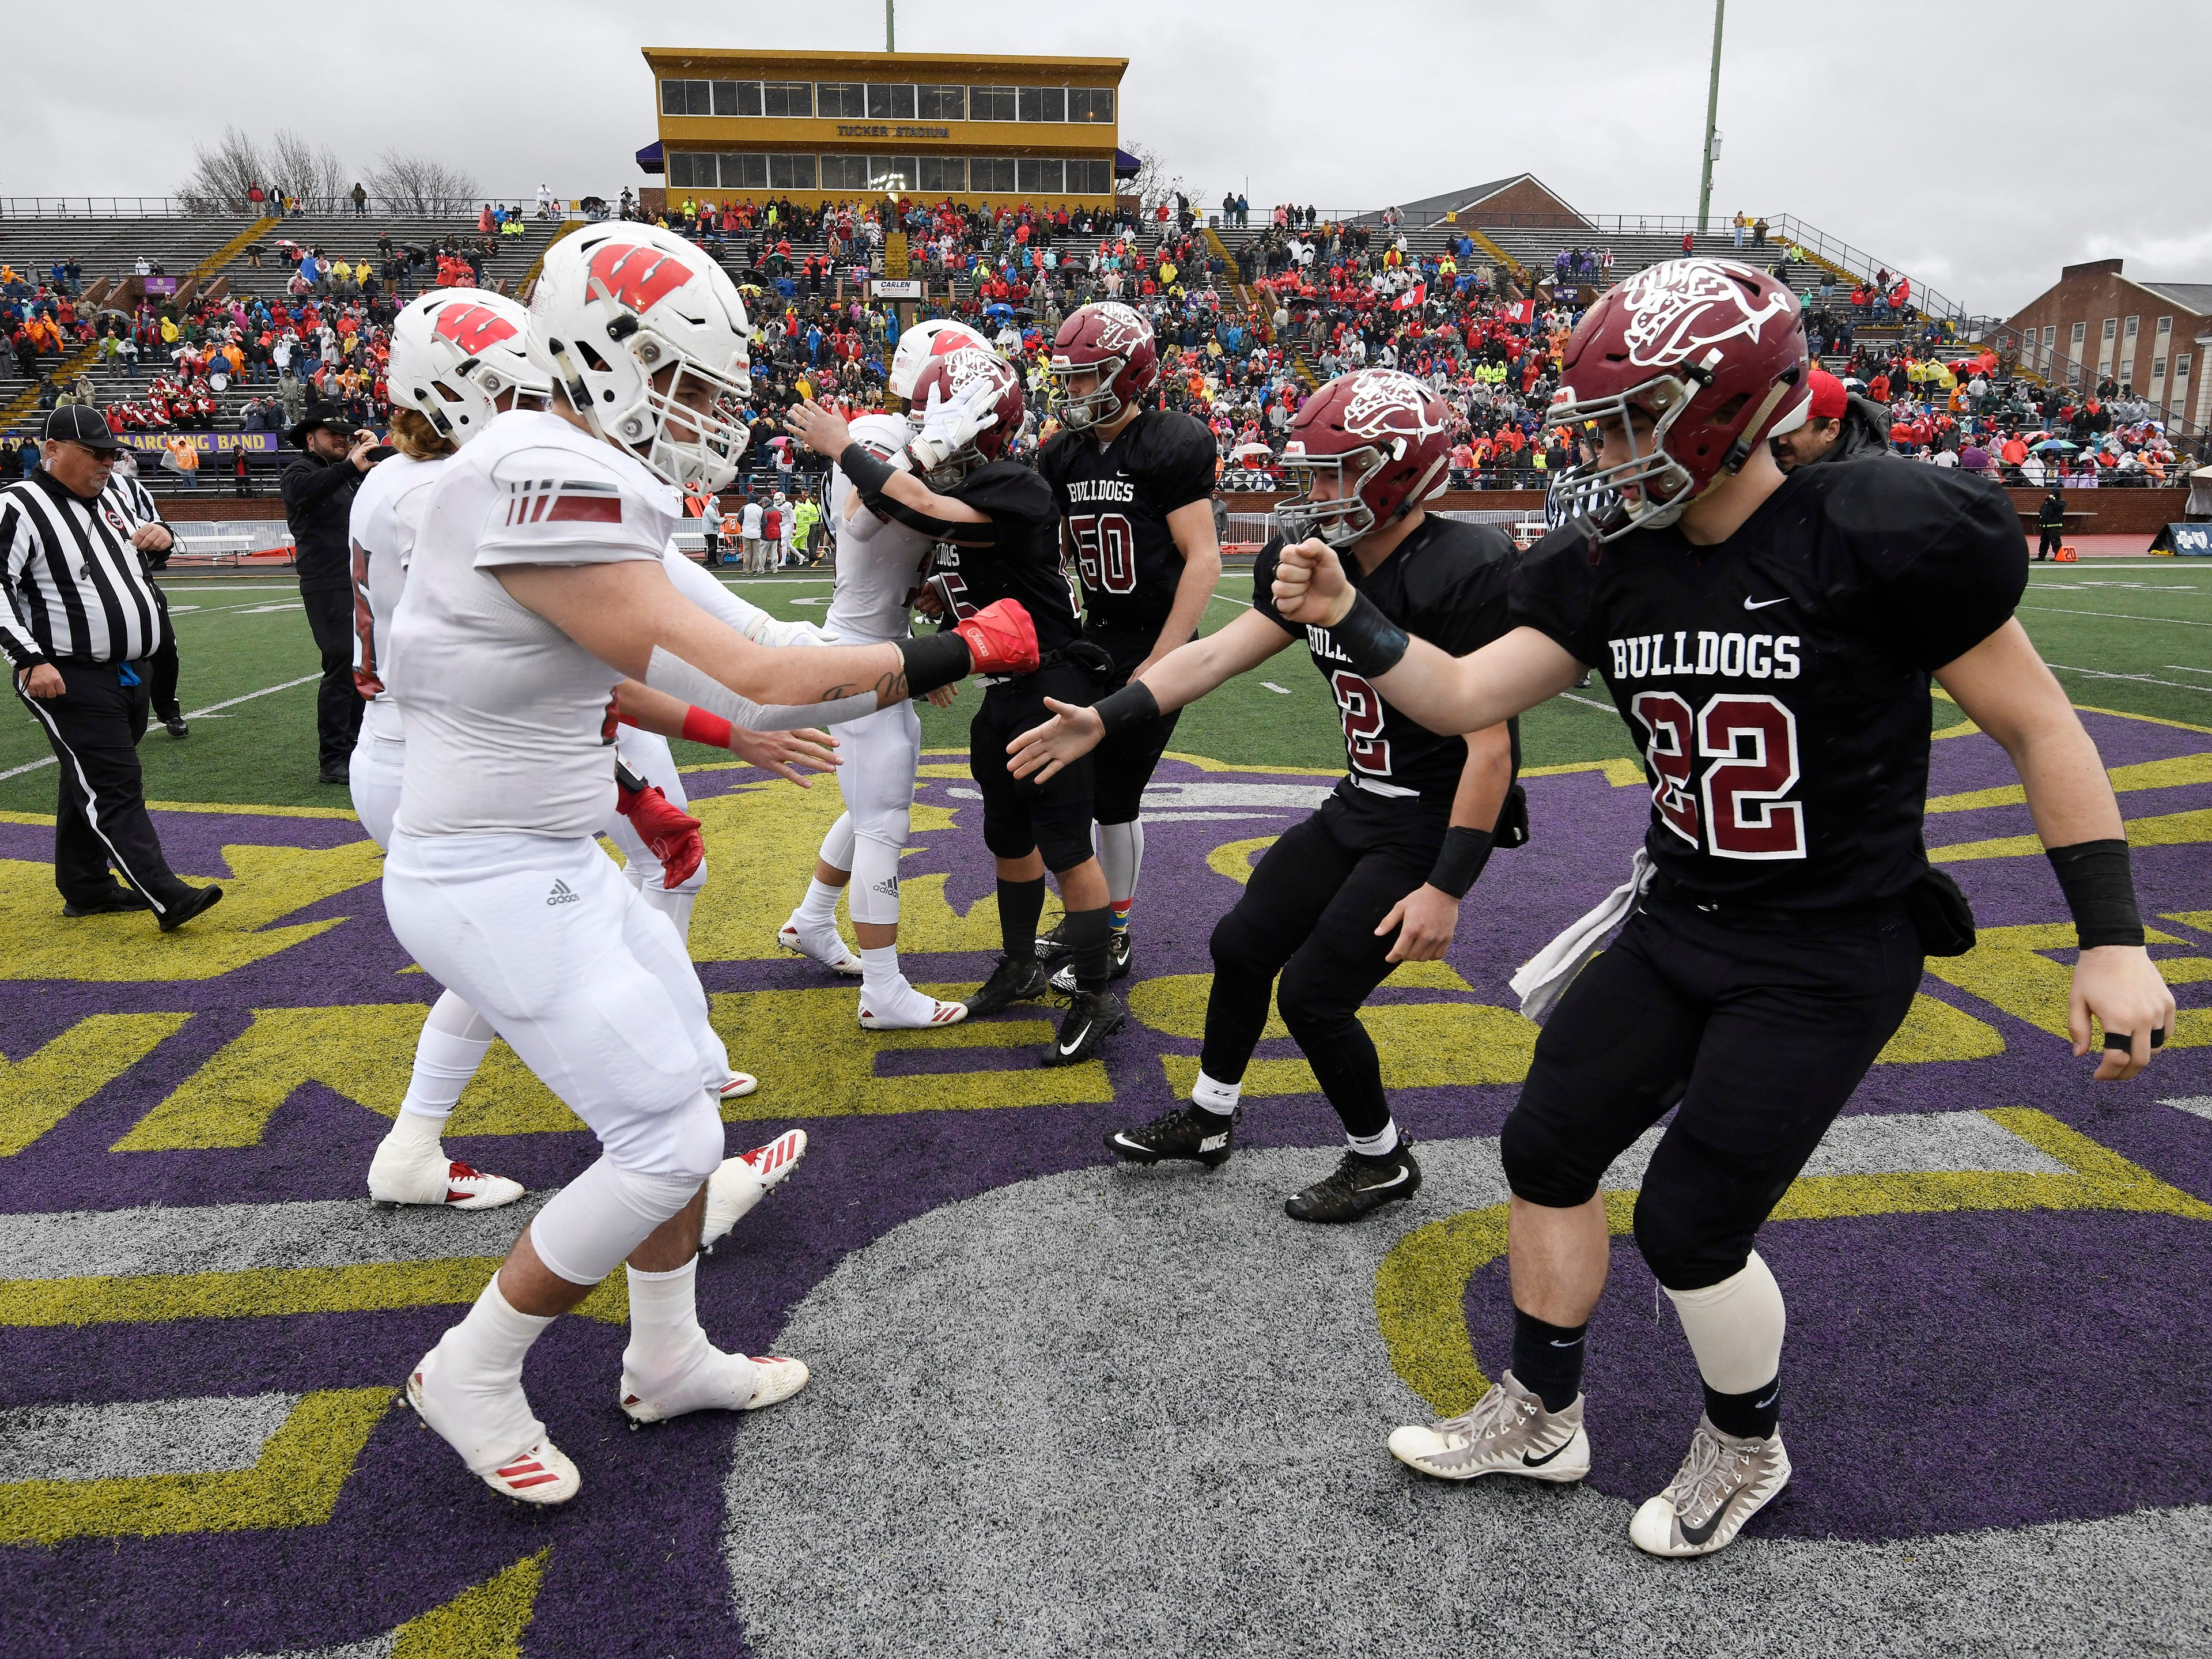 Whitwell and Cornersville players bump fits before the start of the Class I-A BlueCross Bowl state championship at Tennessee Tech's Tucker Stadium in Cookeville, Tenn., on Saturday, Dec. 1, 2018.